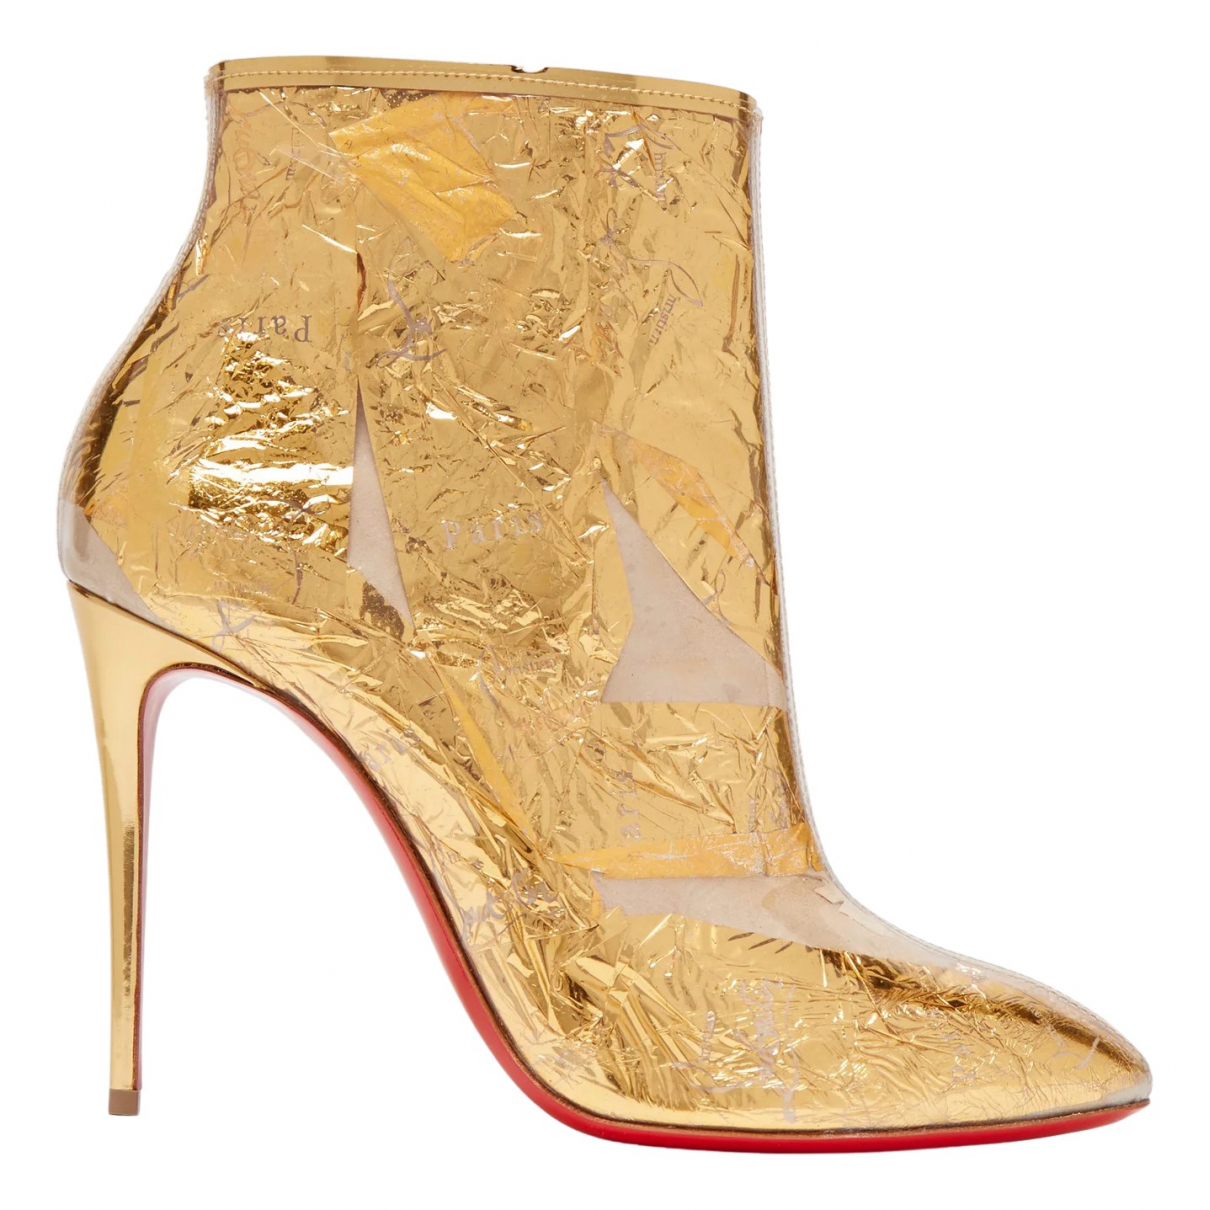 Christian Louboutin \N Gold Leather Ankle boots for Women 37 EU